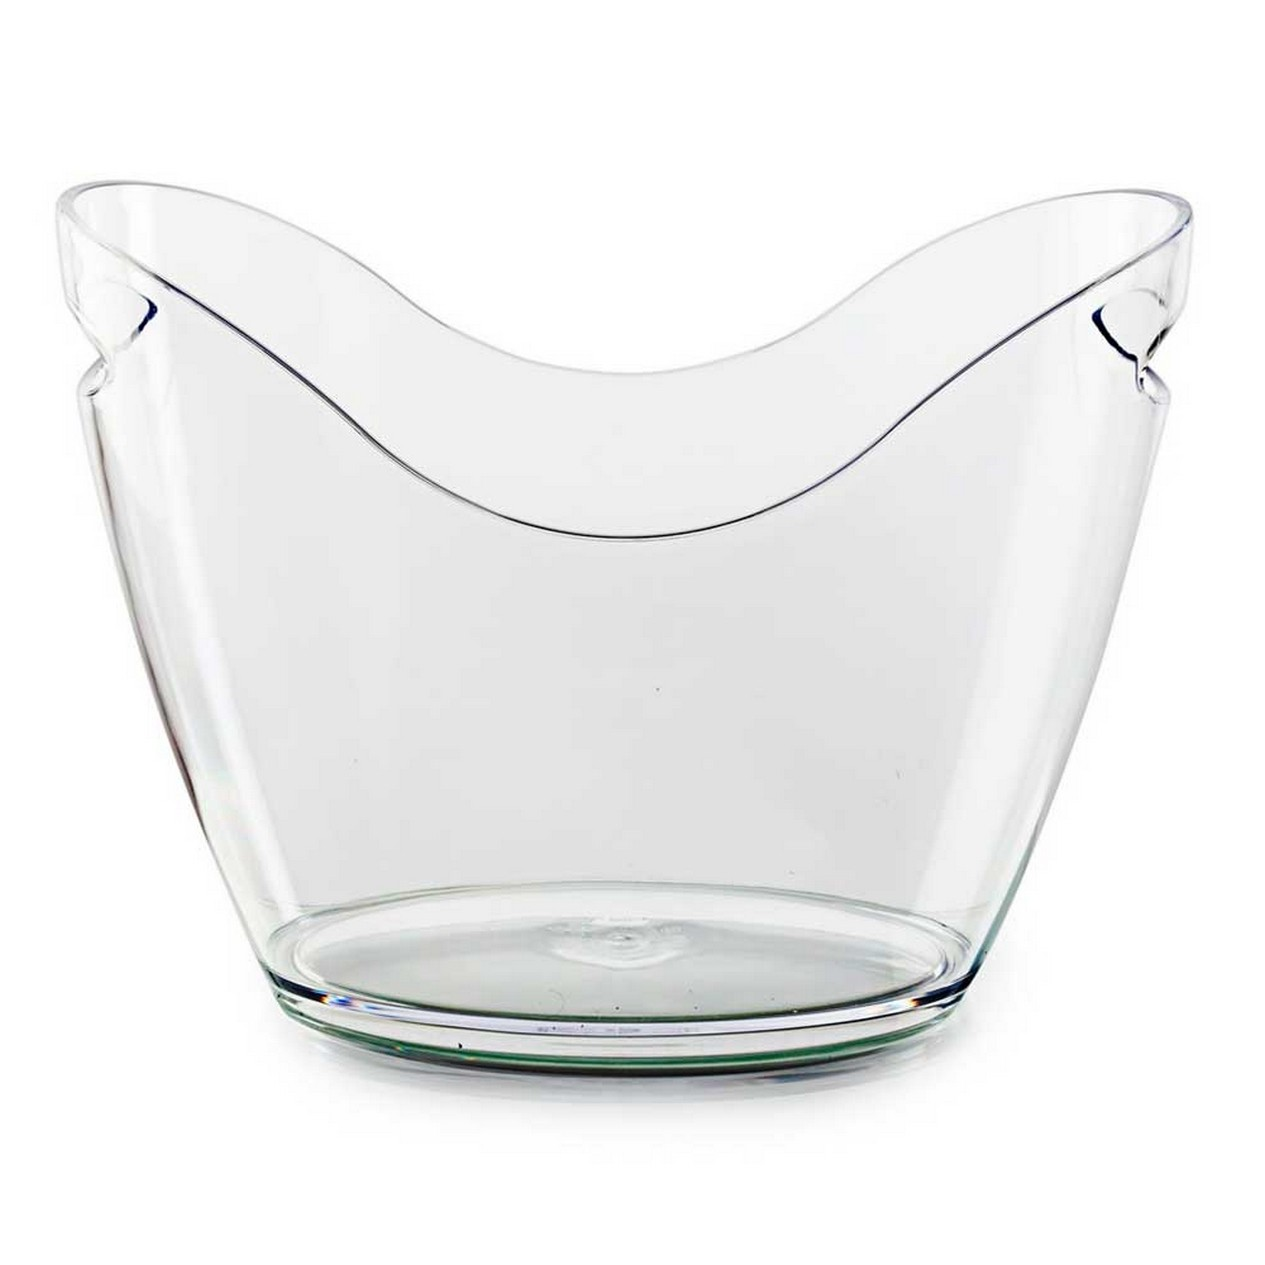 Vasque 7L Transparent